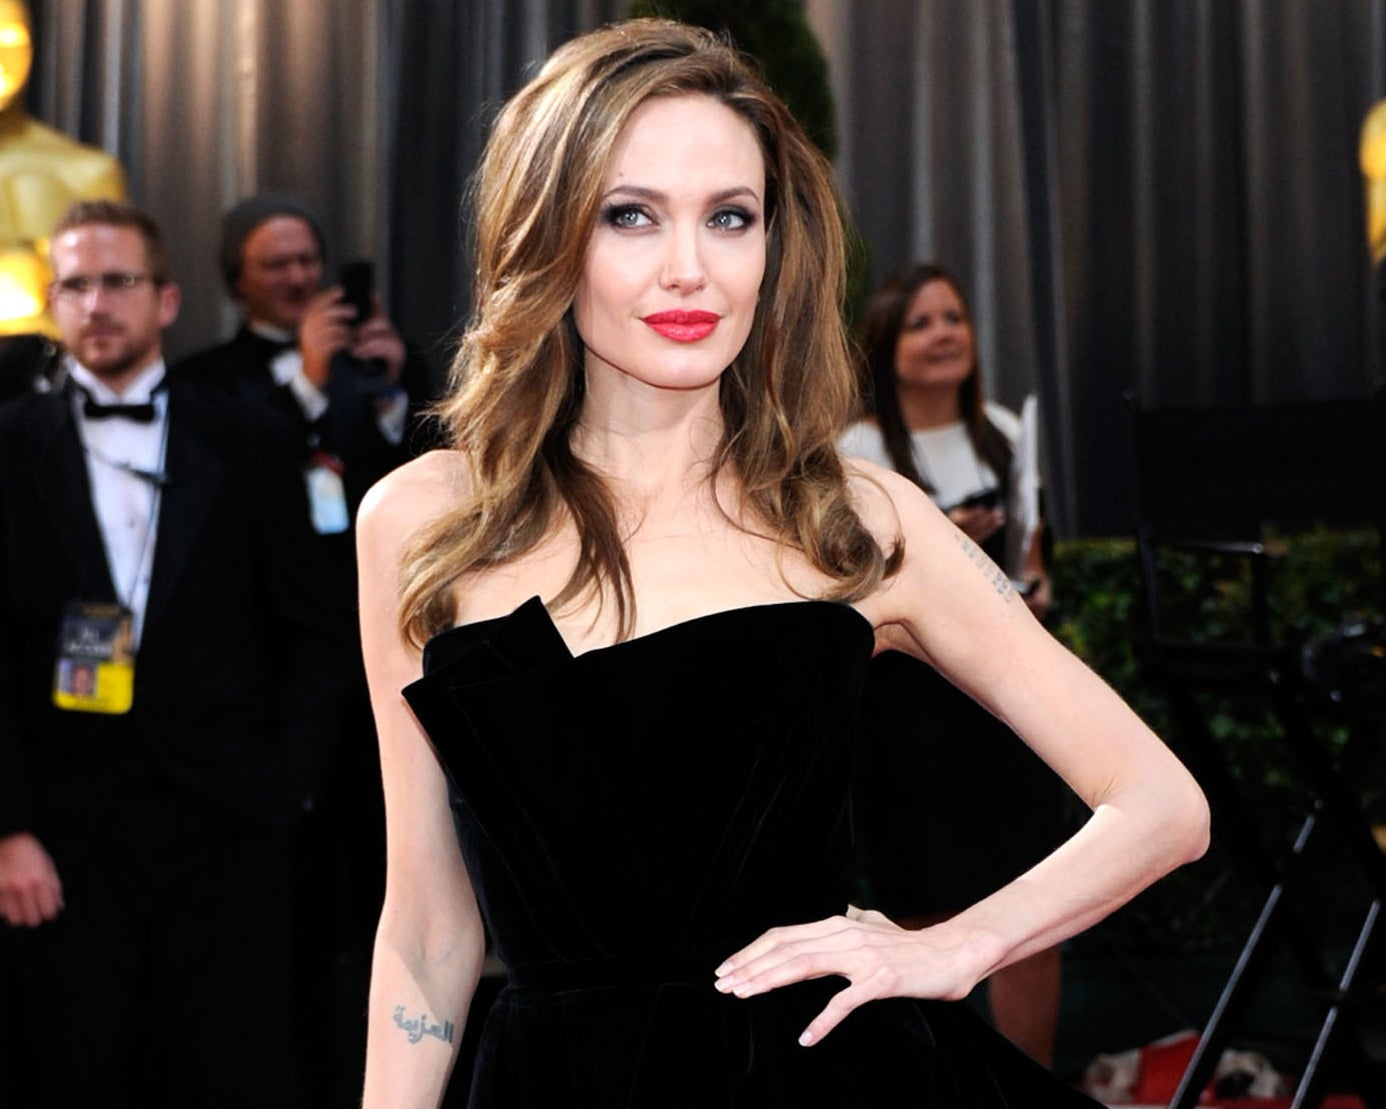 Angelina wears a strapless black dress to an event